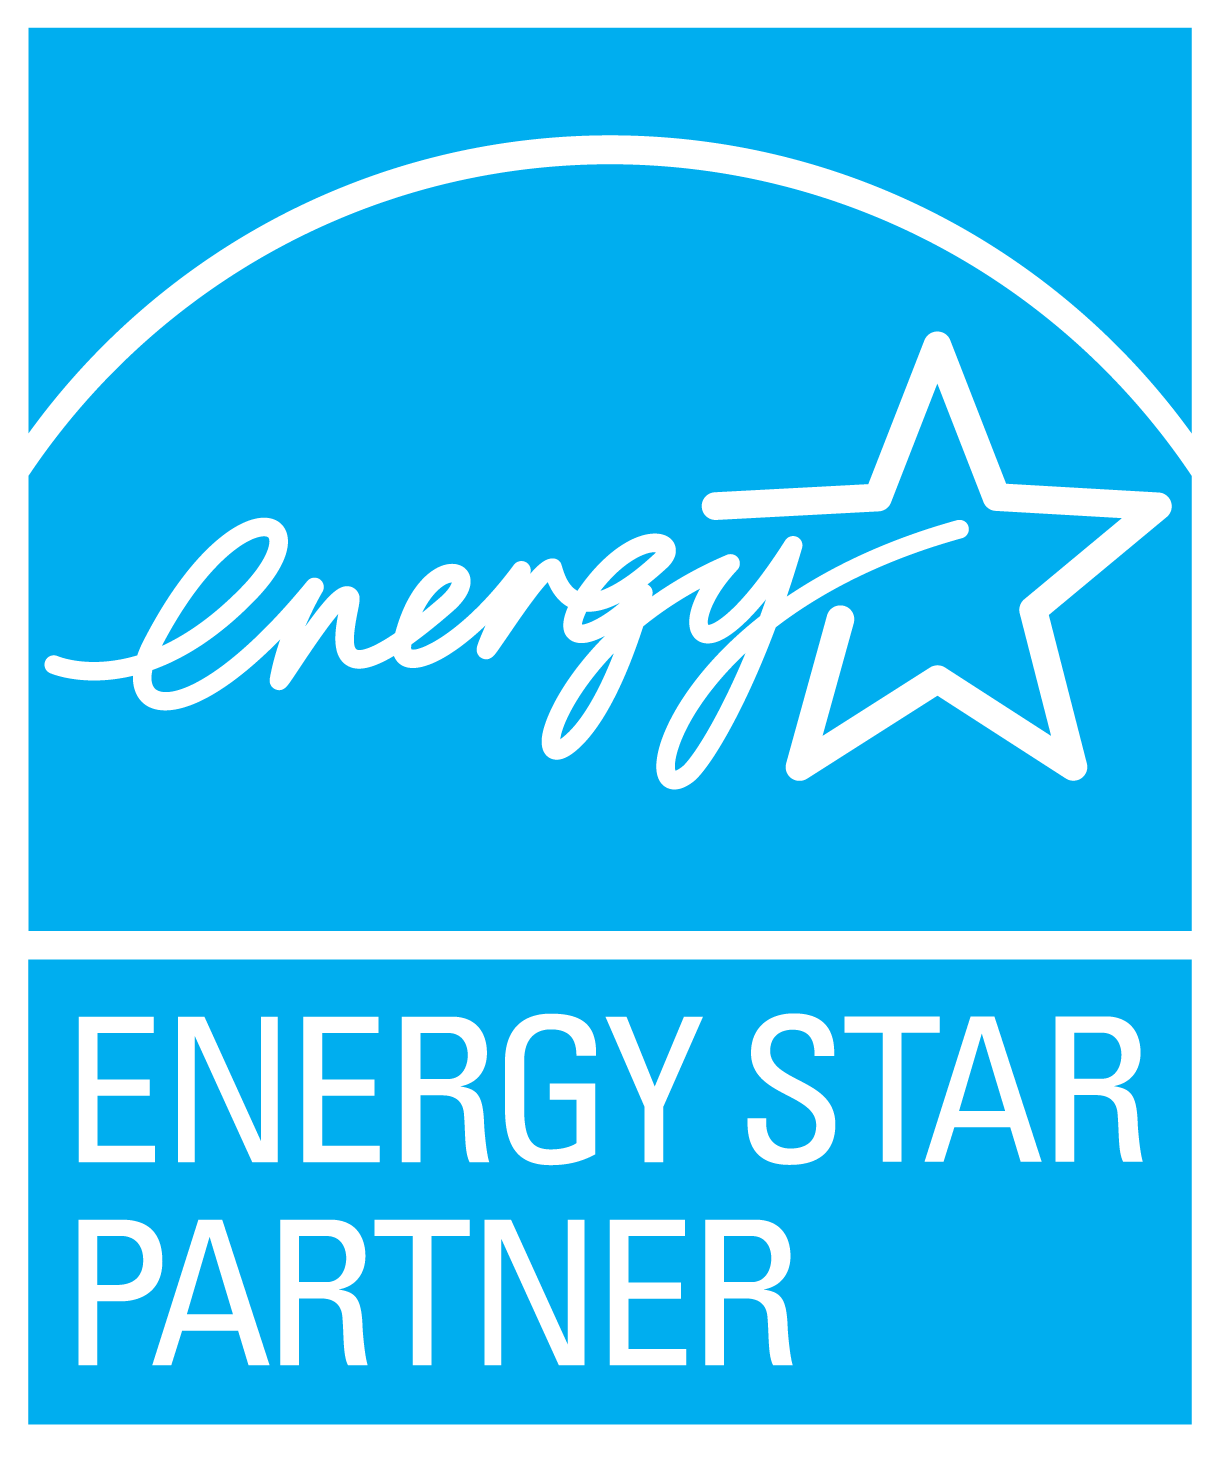 EnergyStarPartner.Blue